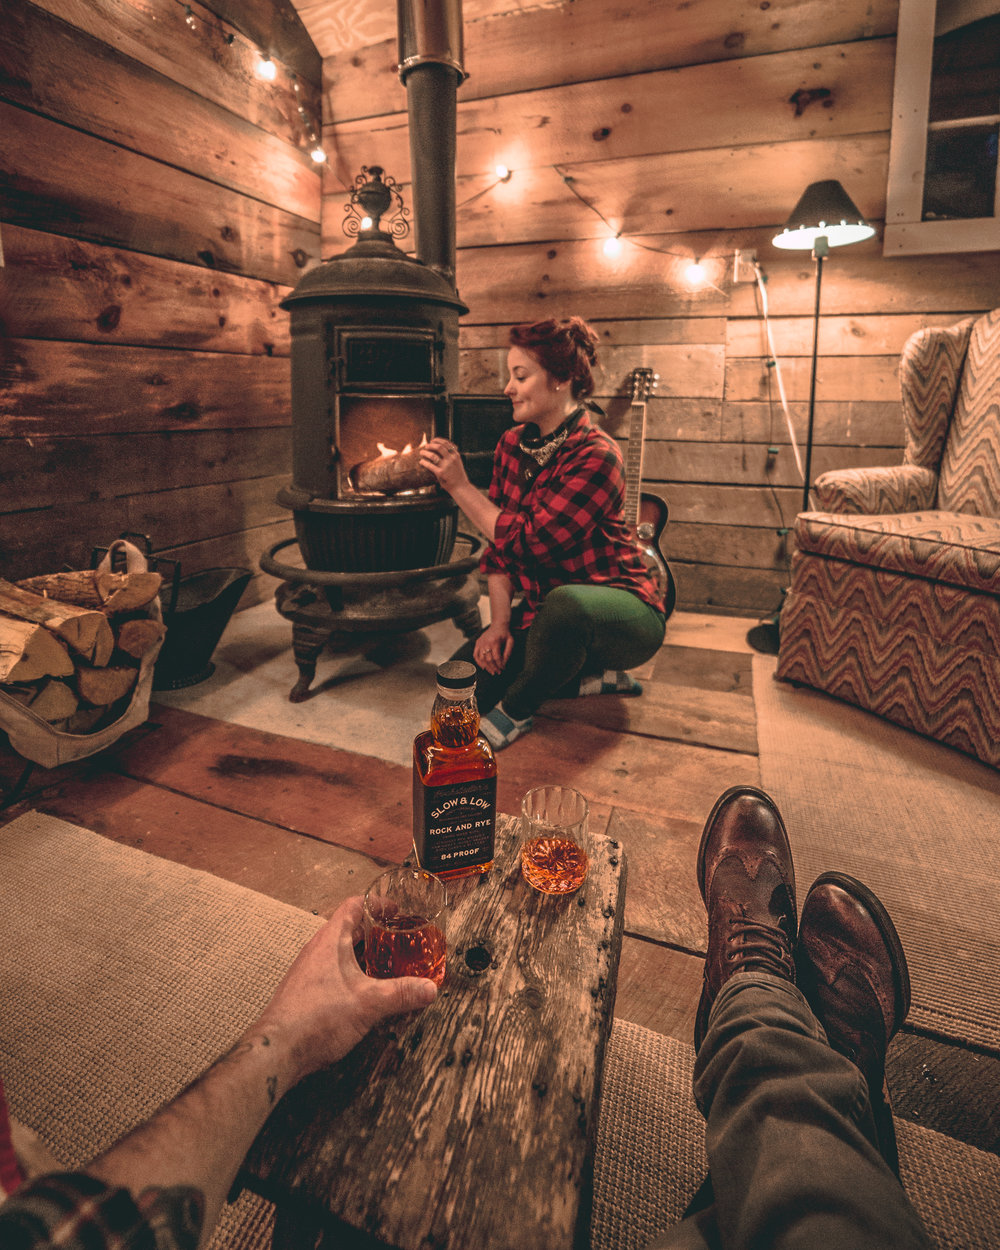 Hochstadter's Slow&Low Whiskey - cabin themed content curation / Instagram collaboration